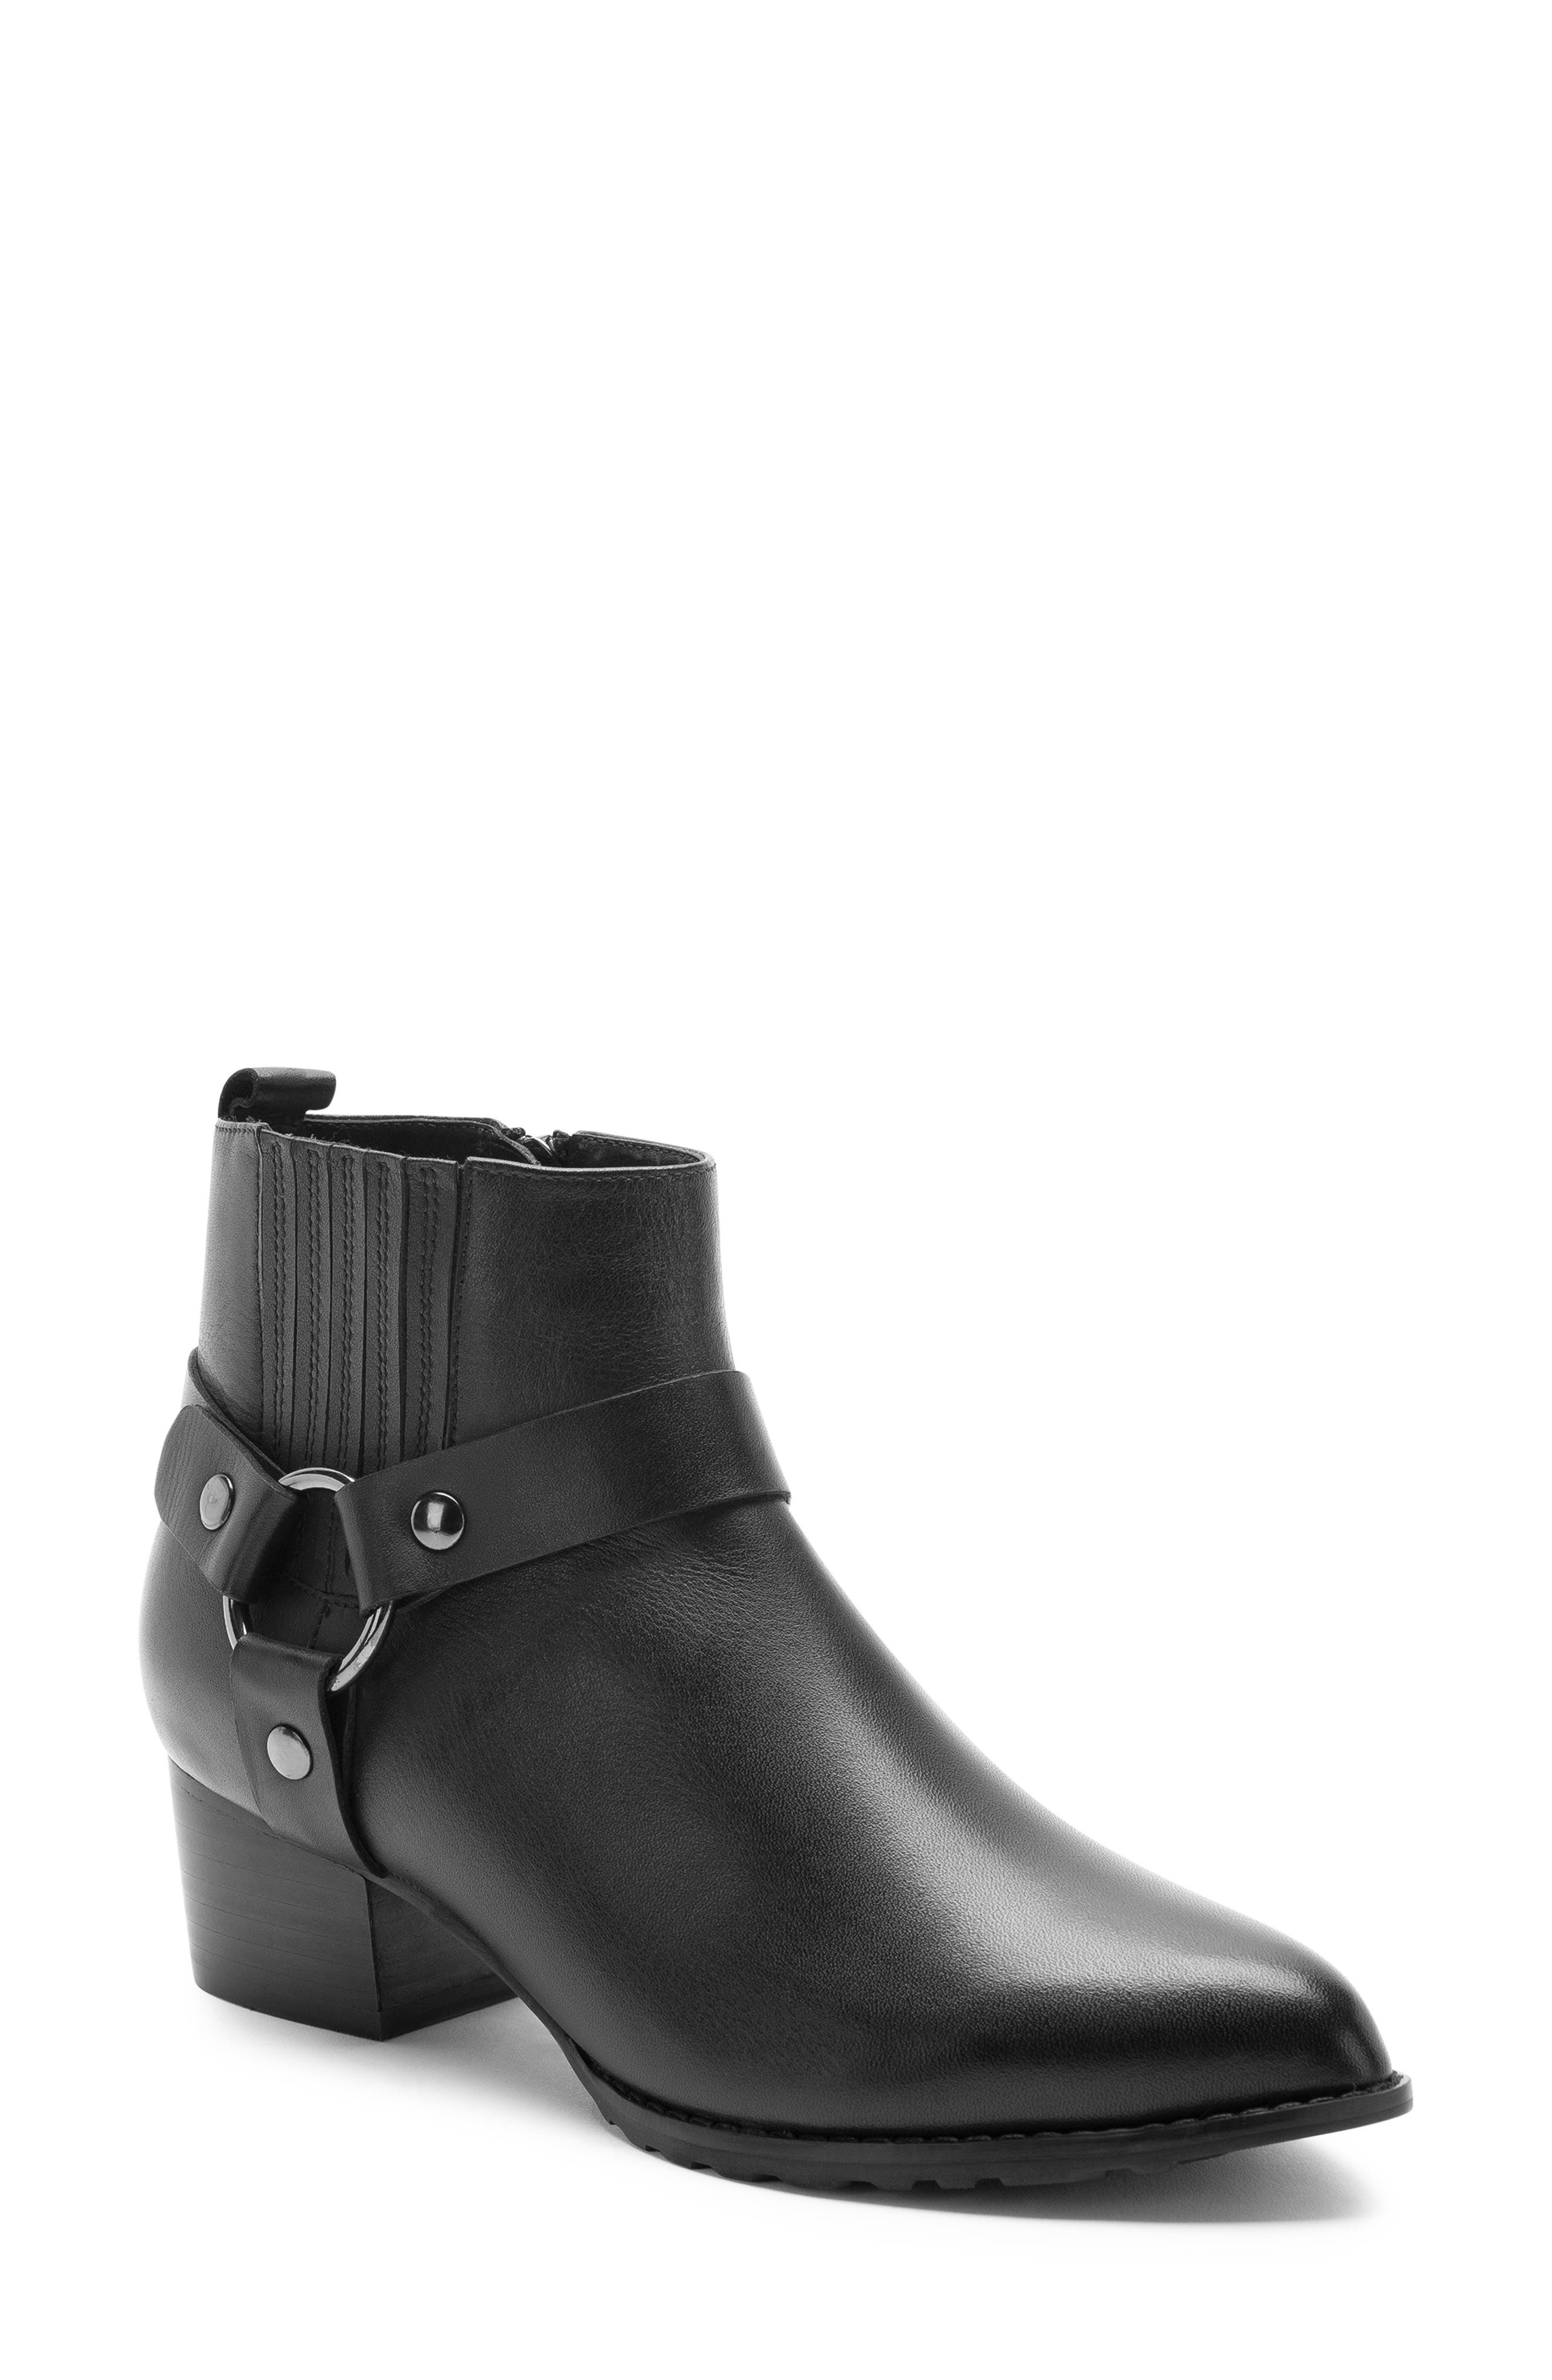 Blondo Tasha Waterproof Bootie- Black